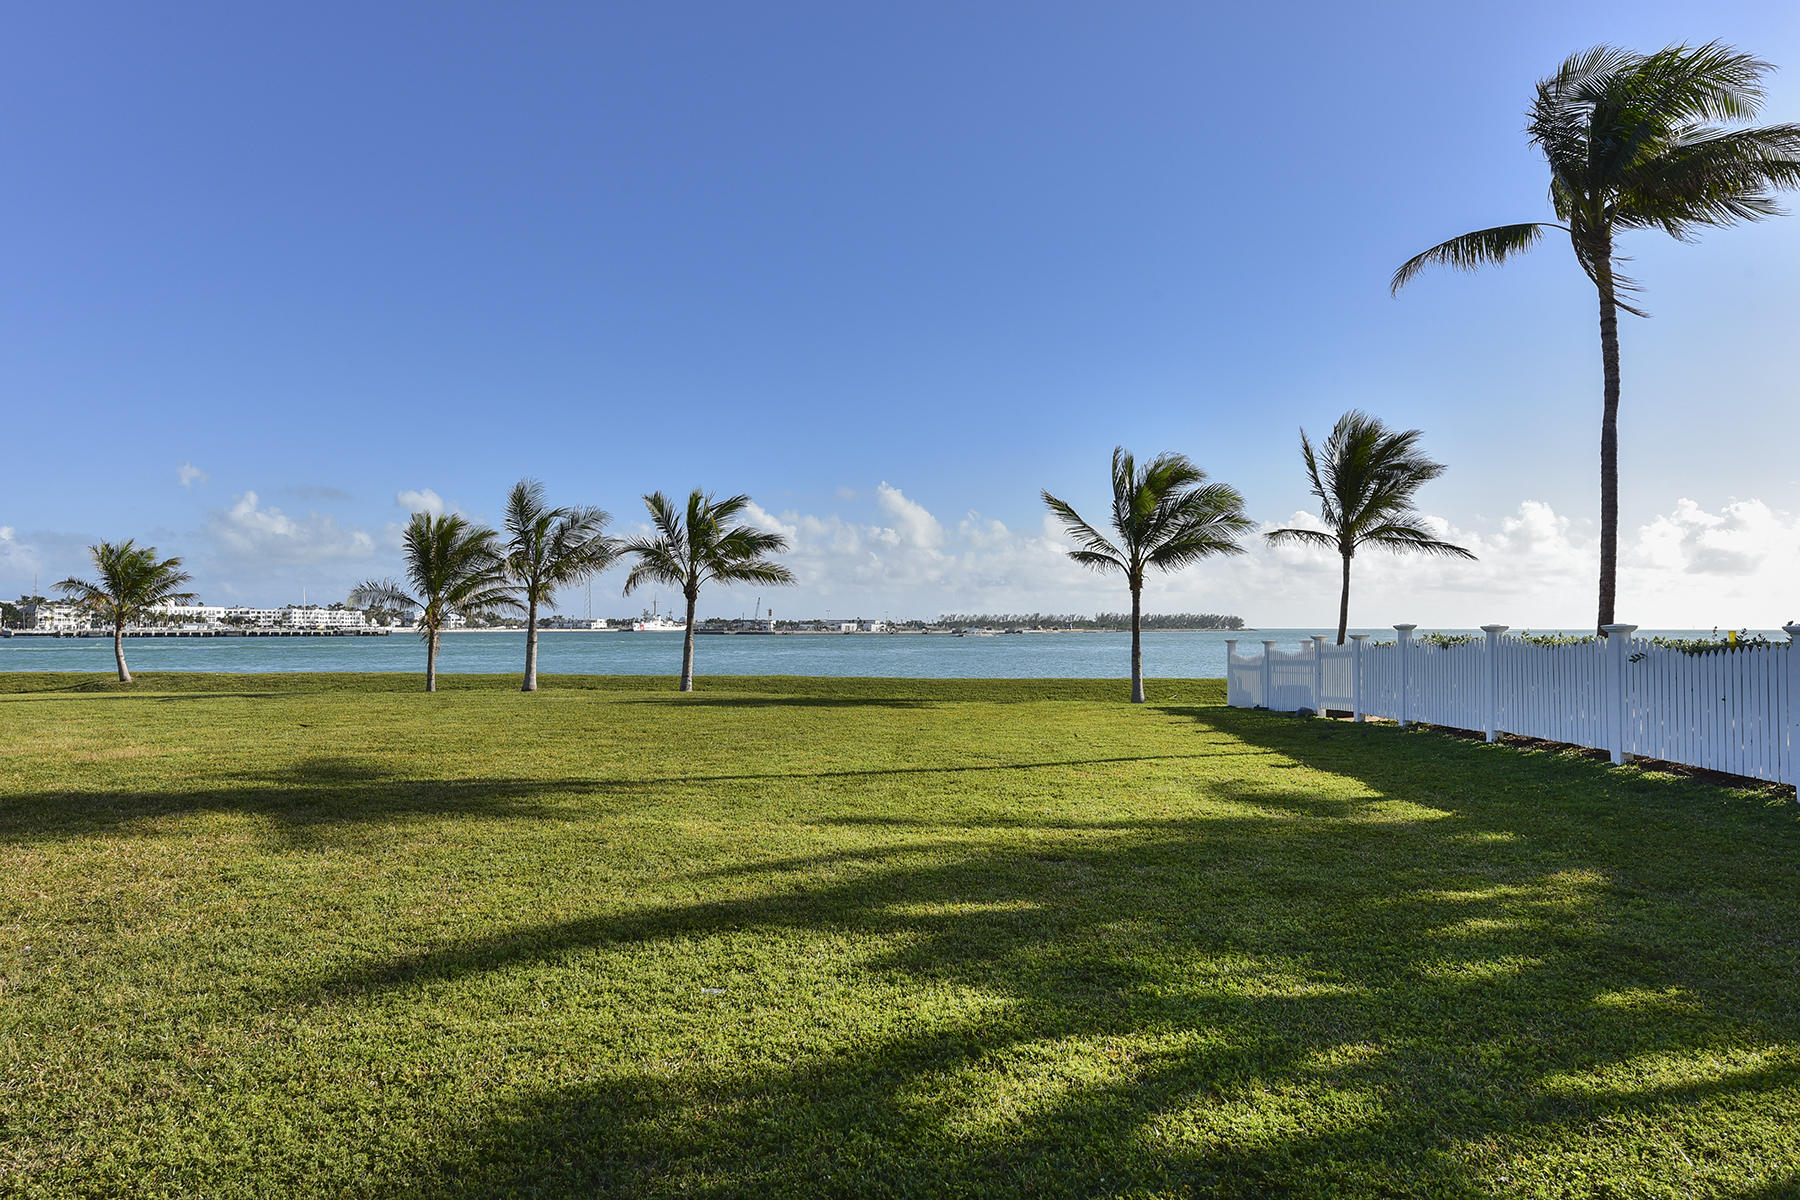 Land for Sale at 27 Sunset Key Drive, Key West, FL 27 Sunset Key Drive Key West, Florida 33040 United States